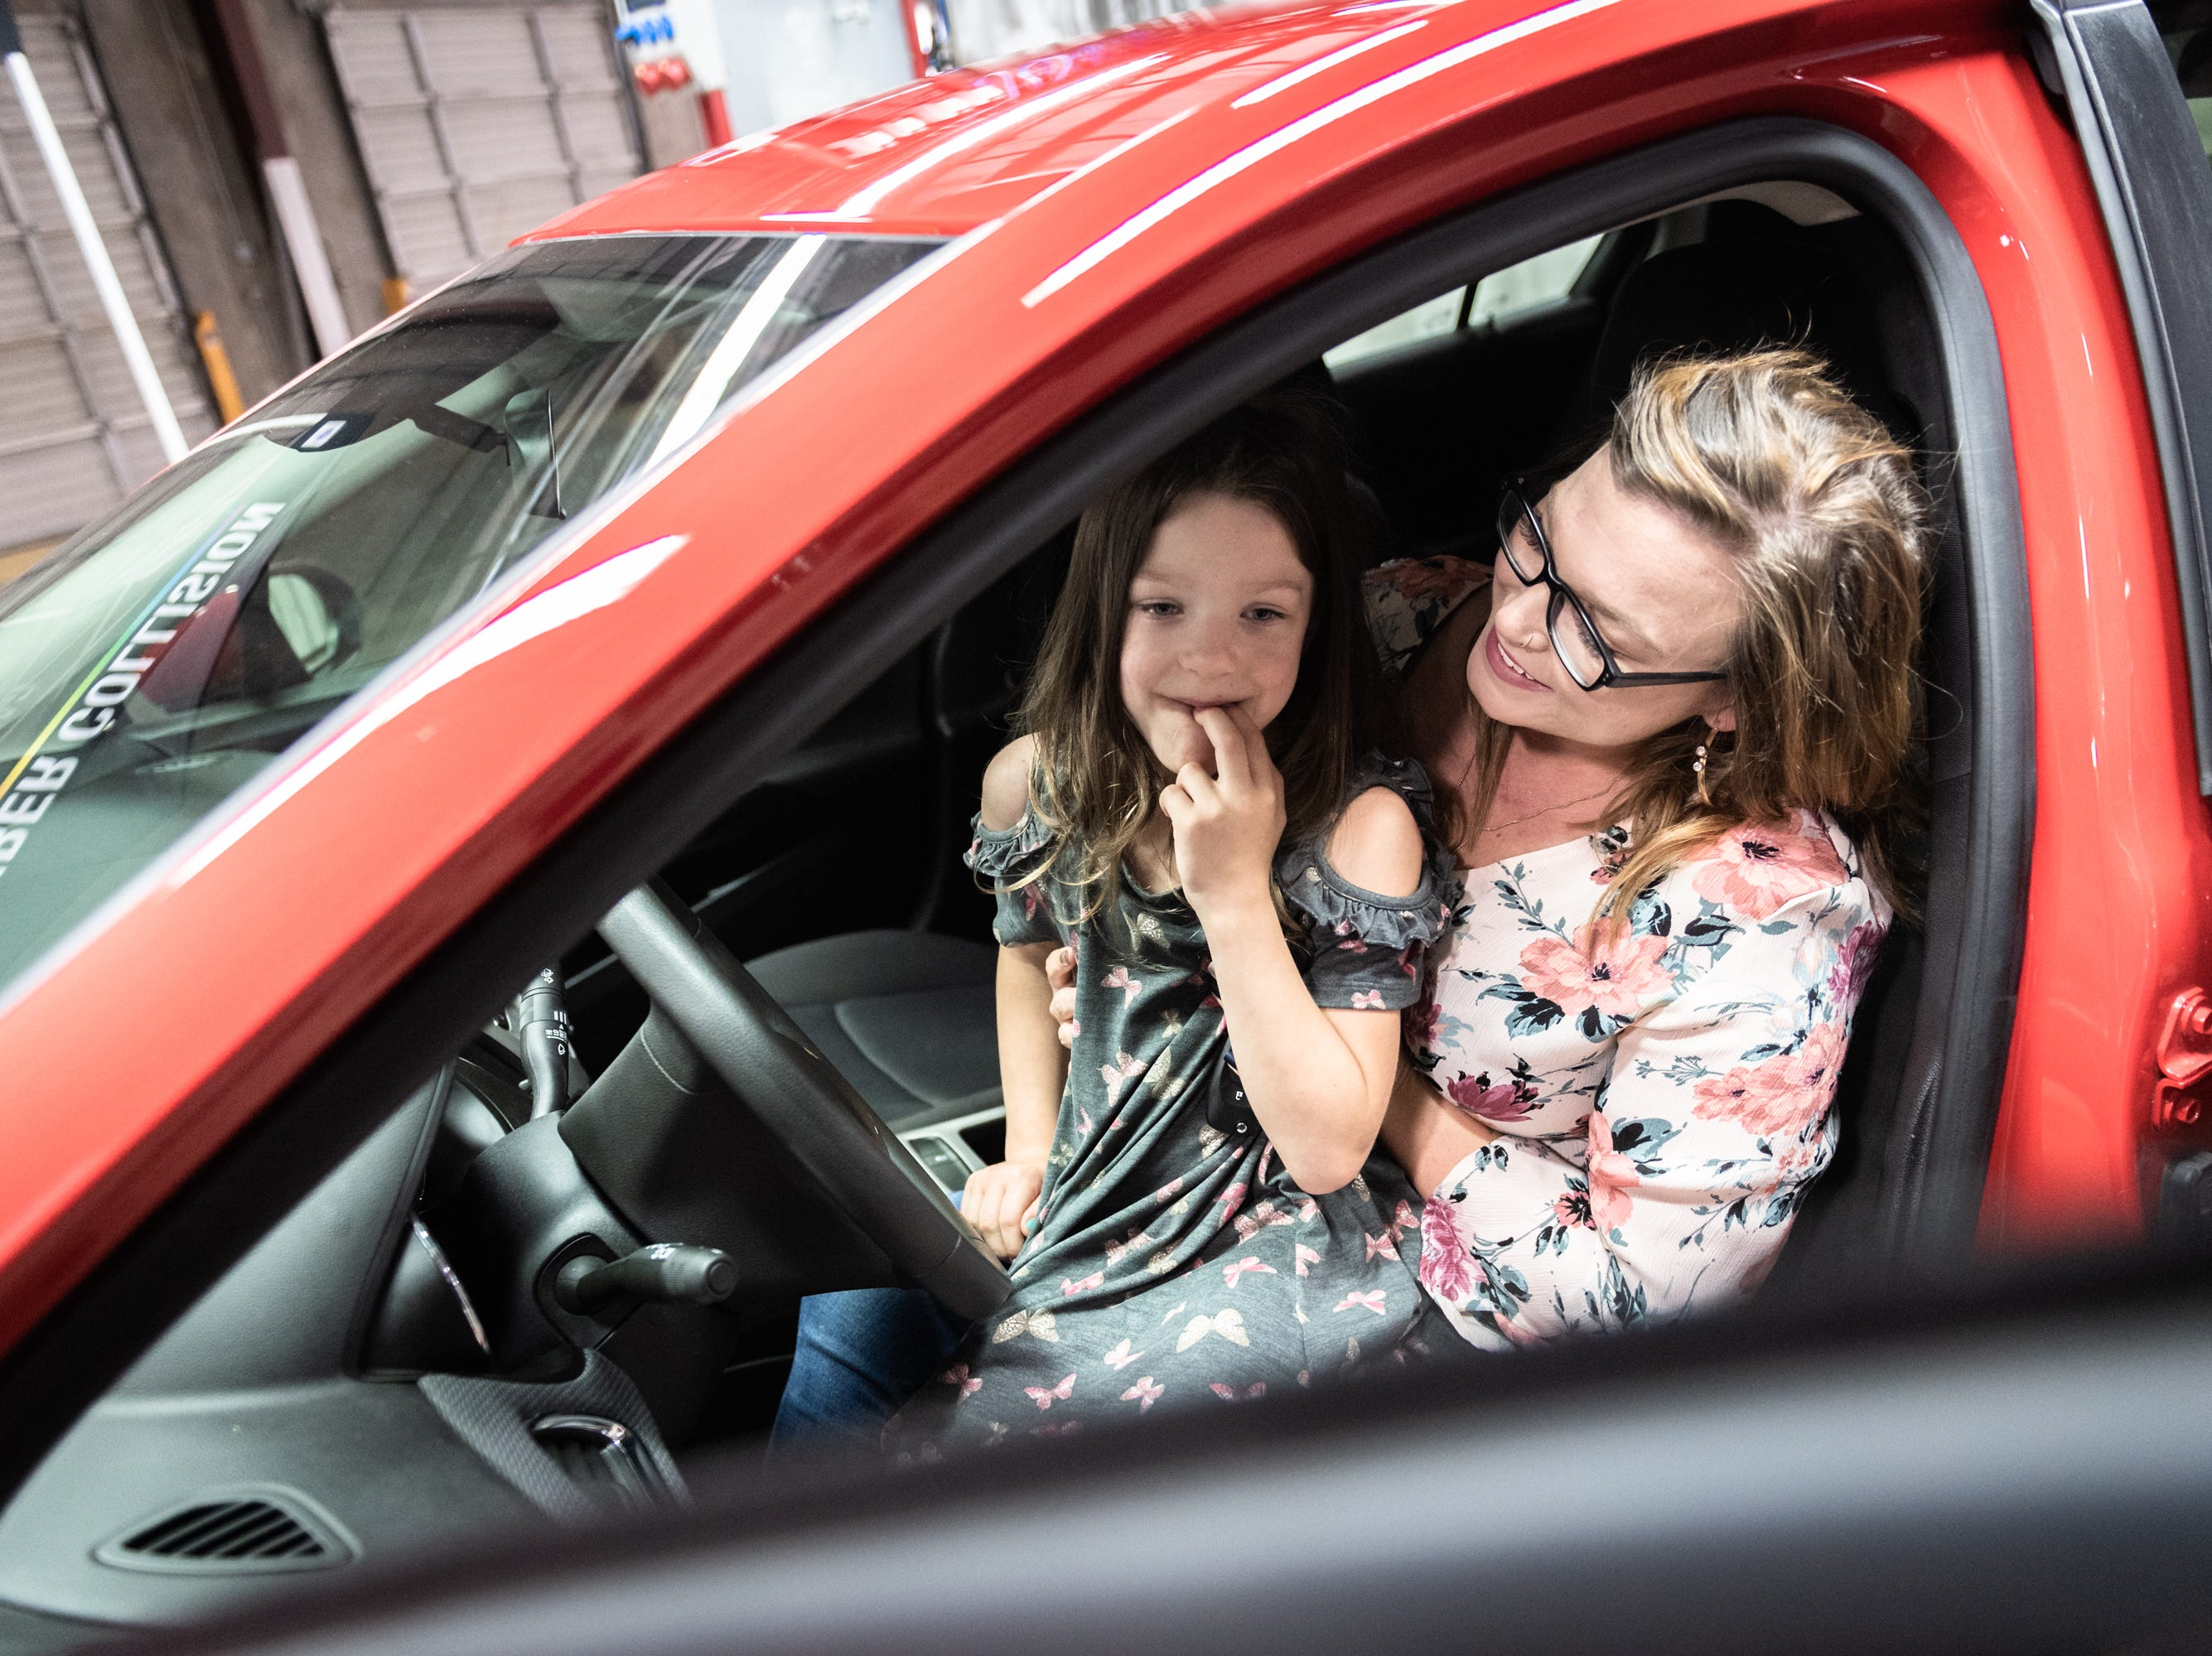 Leah Floyd, 23, and her daughter, Avah Floyd, 5, of Anderson, sits in the driver's seat of their new 2018 Chevy Cruze she was presented with at Caliber Collision on Ridge Road in Greenville, Wednesday, May 8, 2019, as part of their Recycled Rides program. Caliber Collision partners with Geico for the program and worked with local nonprofit, AIM who nominated Floyd as the recipient.